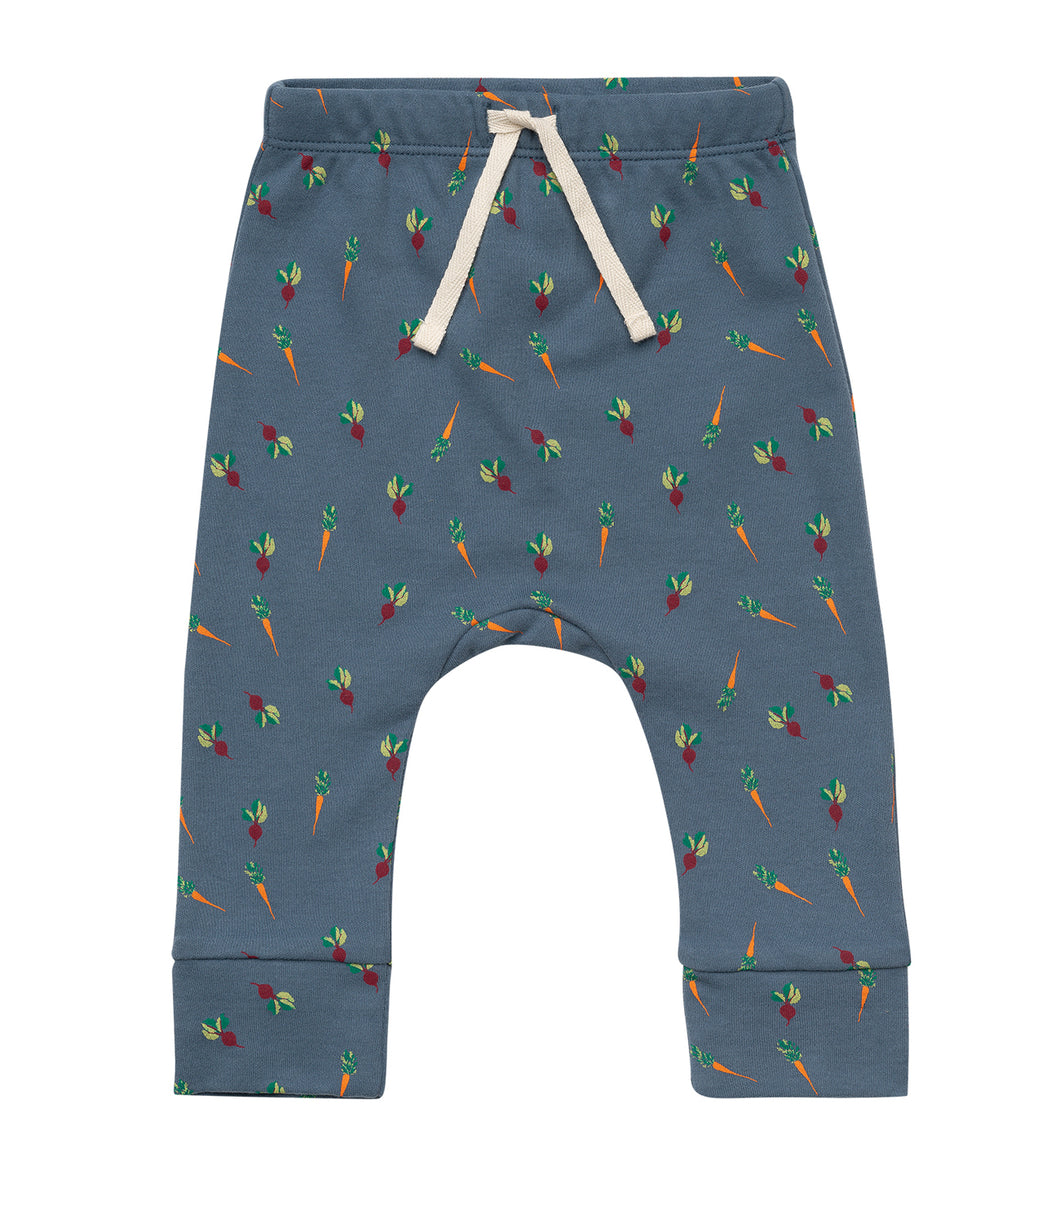 Martha & Marlo Kids Drawstring Pant Organic Cotton Veggie Print Blue